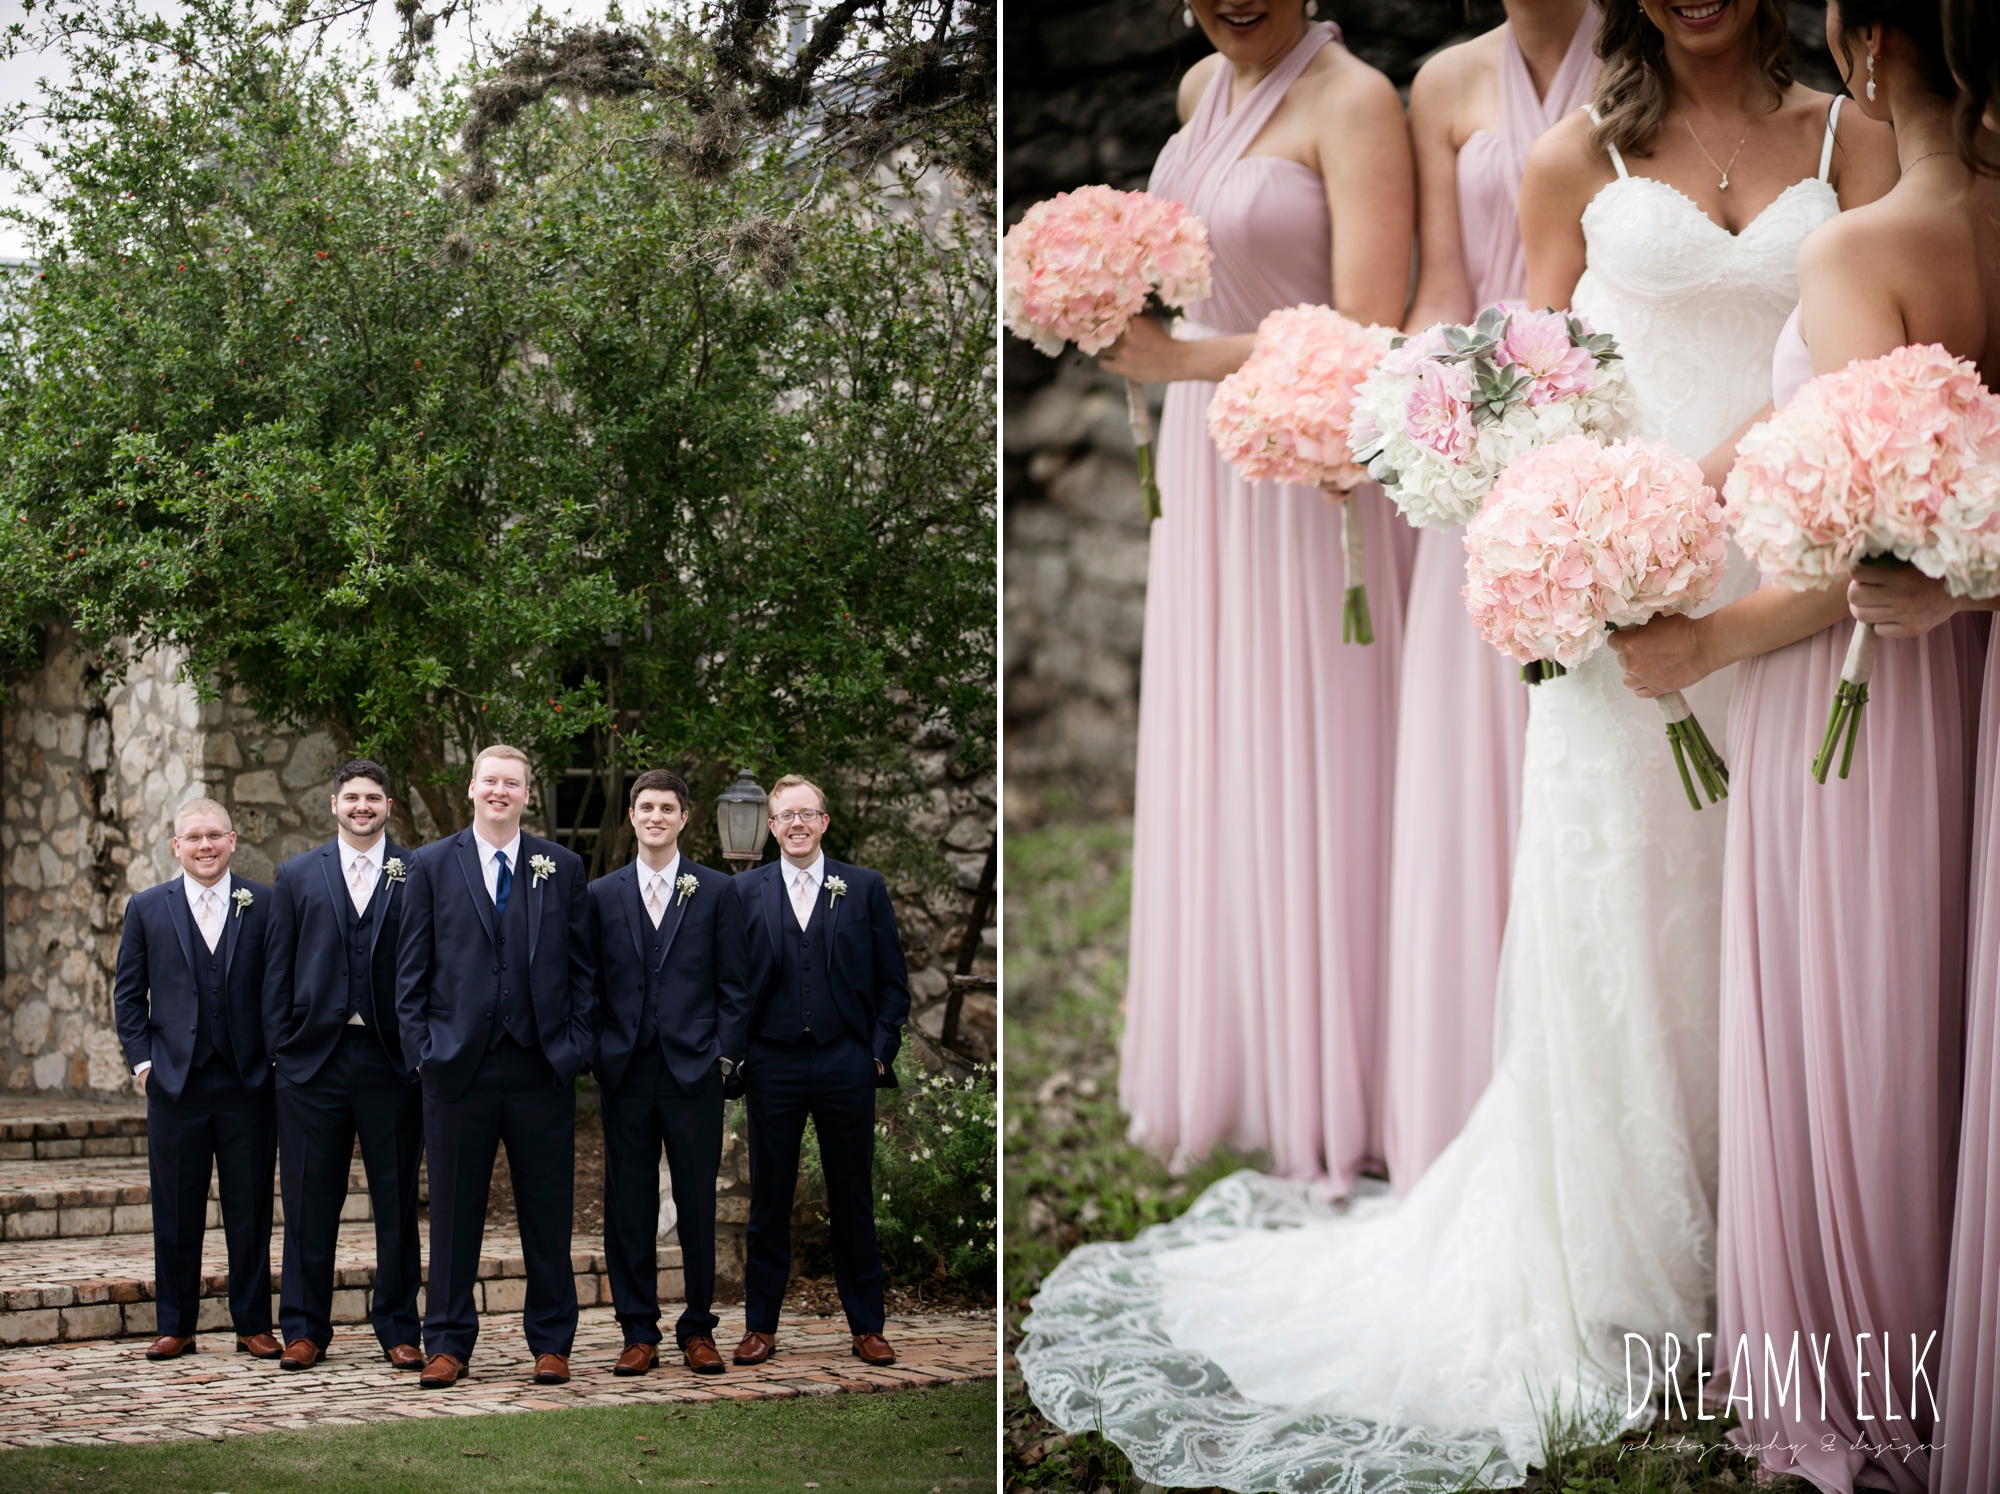 groom and groomsmen in navy suits, bride and bridesmaids, mix and matched floor length blush bridesmaid dresses, backless column sheath wedding dress, heb blooms, cloudy march wedding photo, canyon springs golf club wedding, san antonio, texas {dreamy elk photography and design}